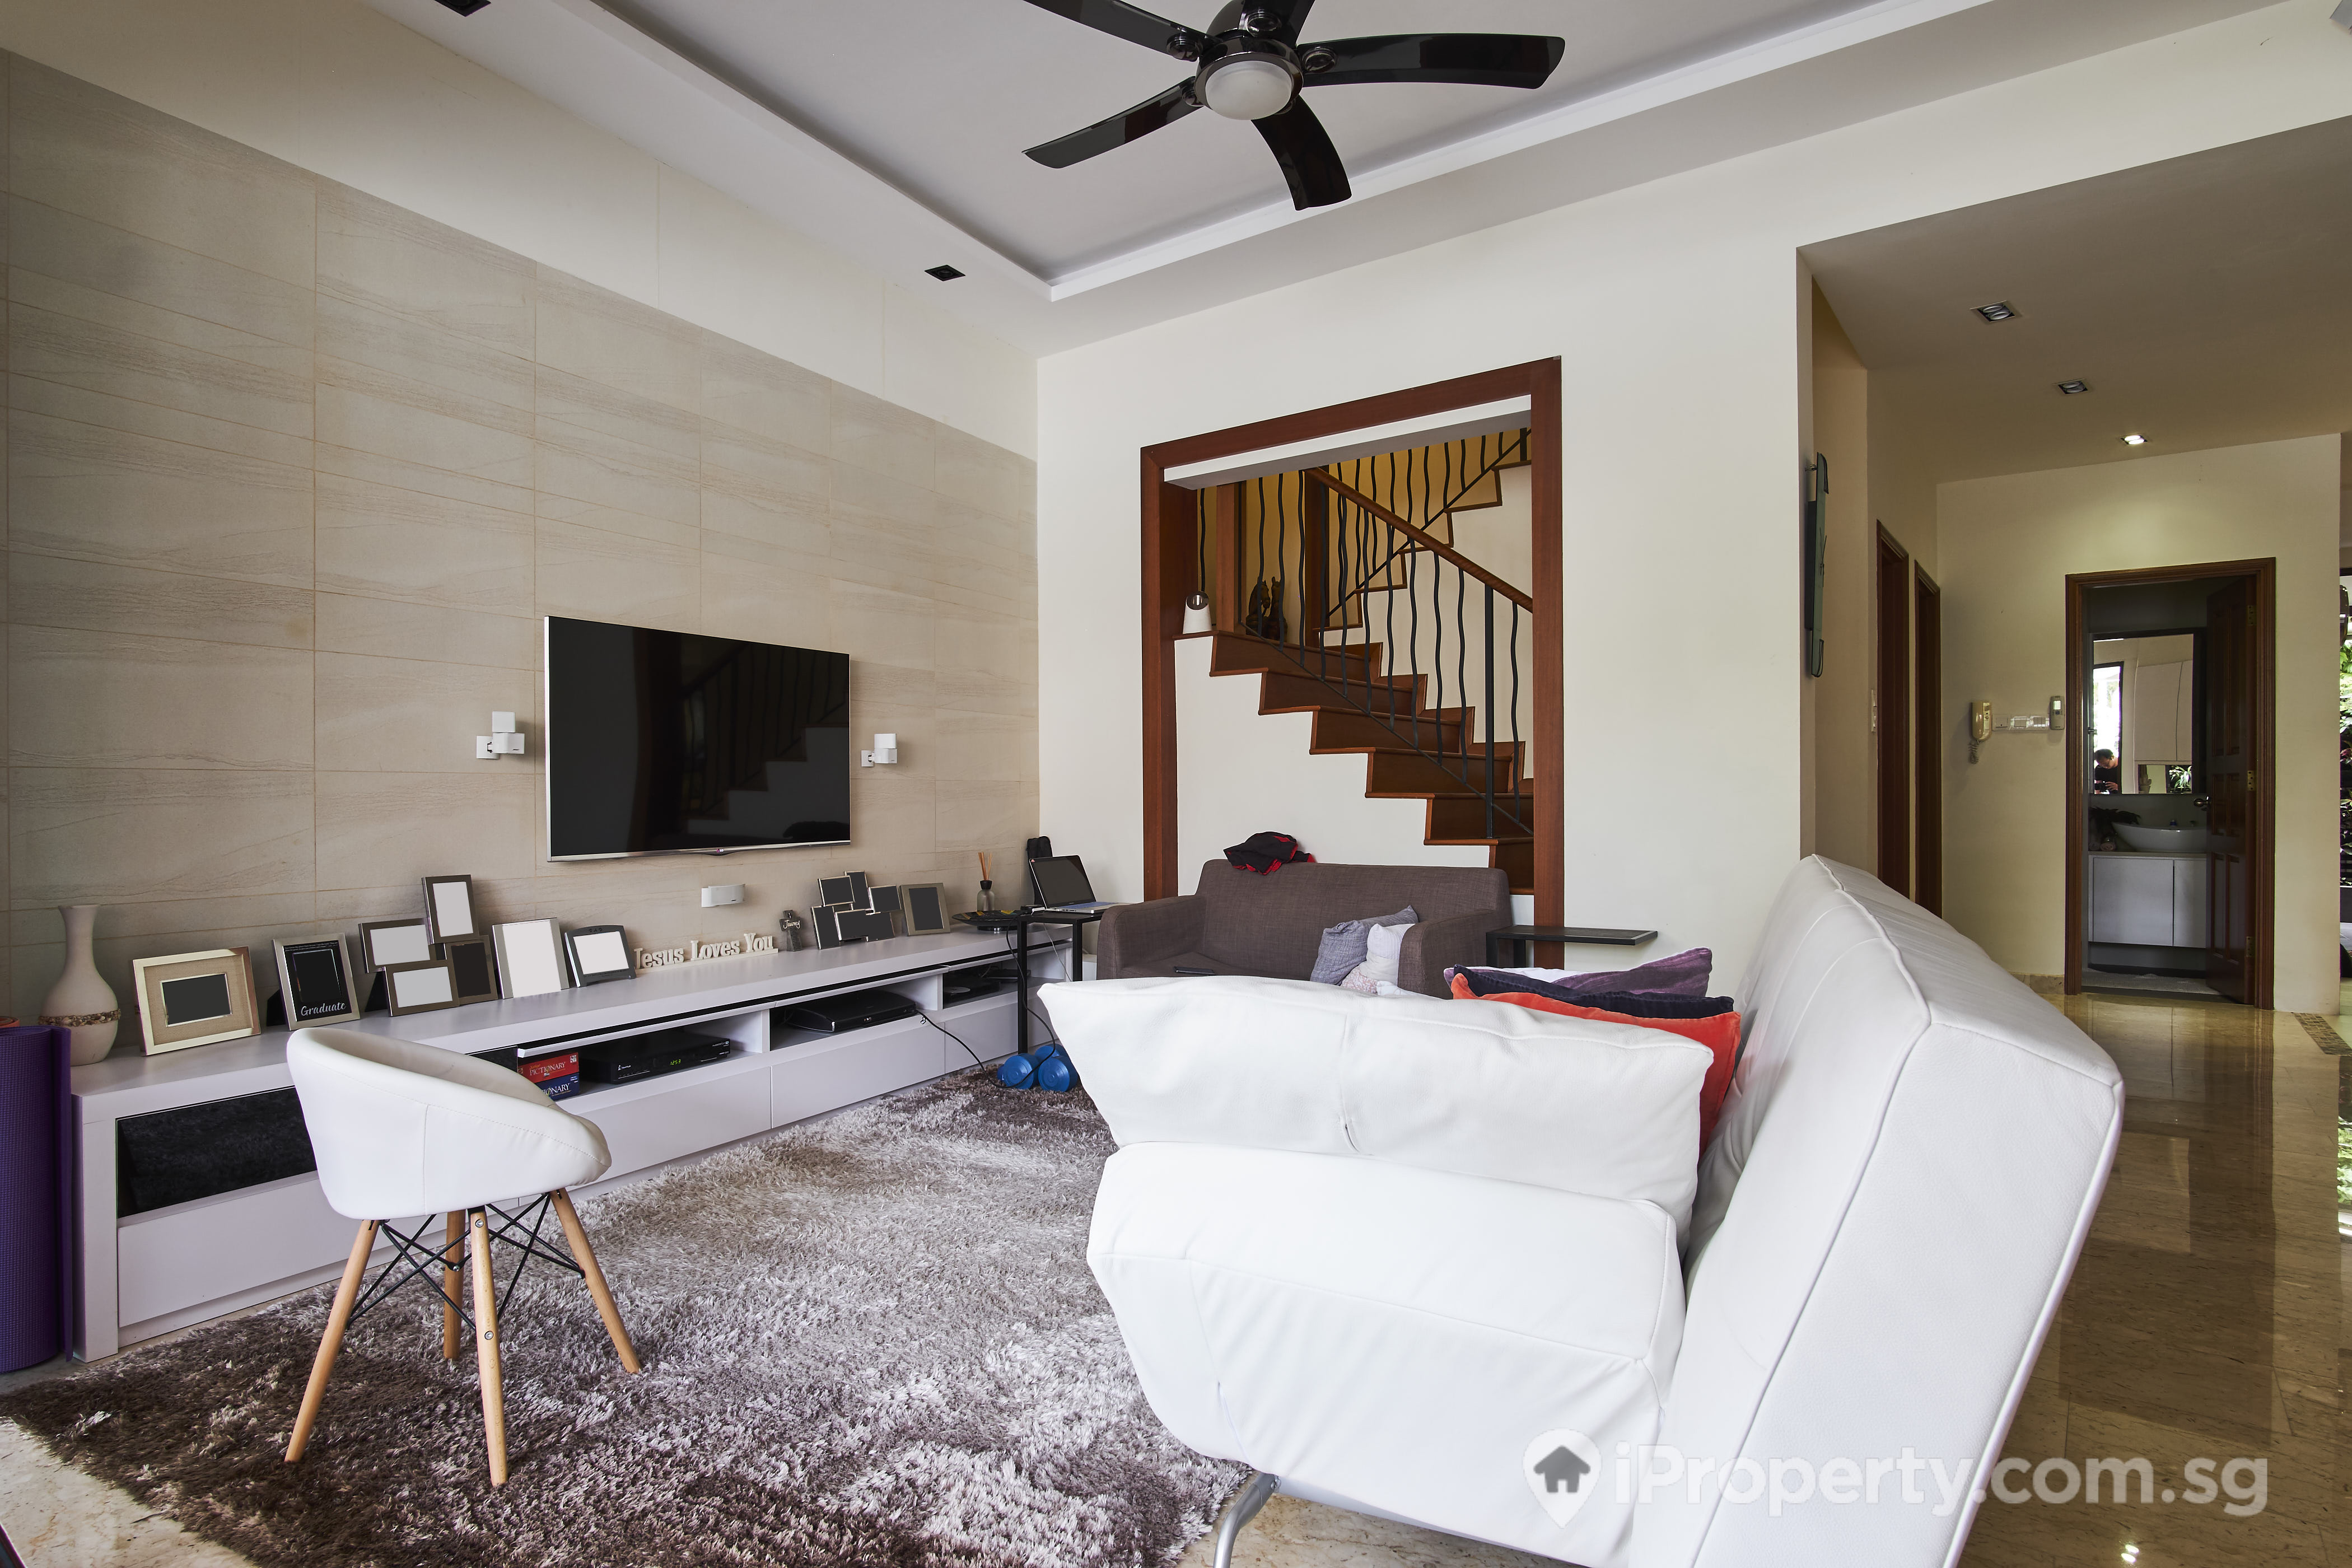 Top 6 Feng Shui Tips To Create Great Energy At Home